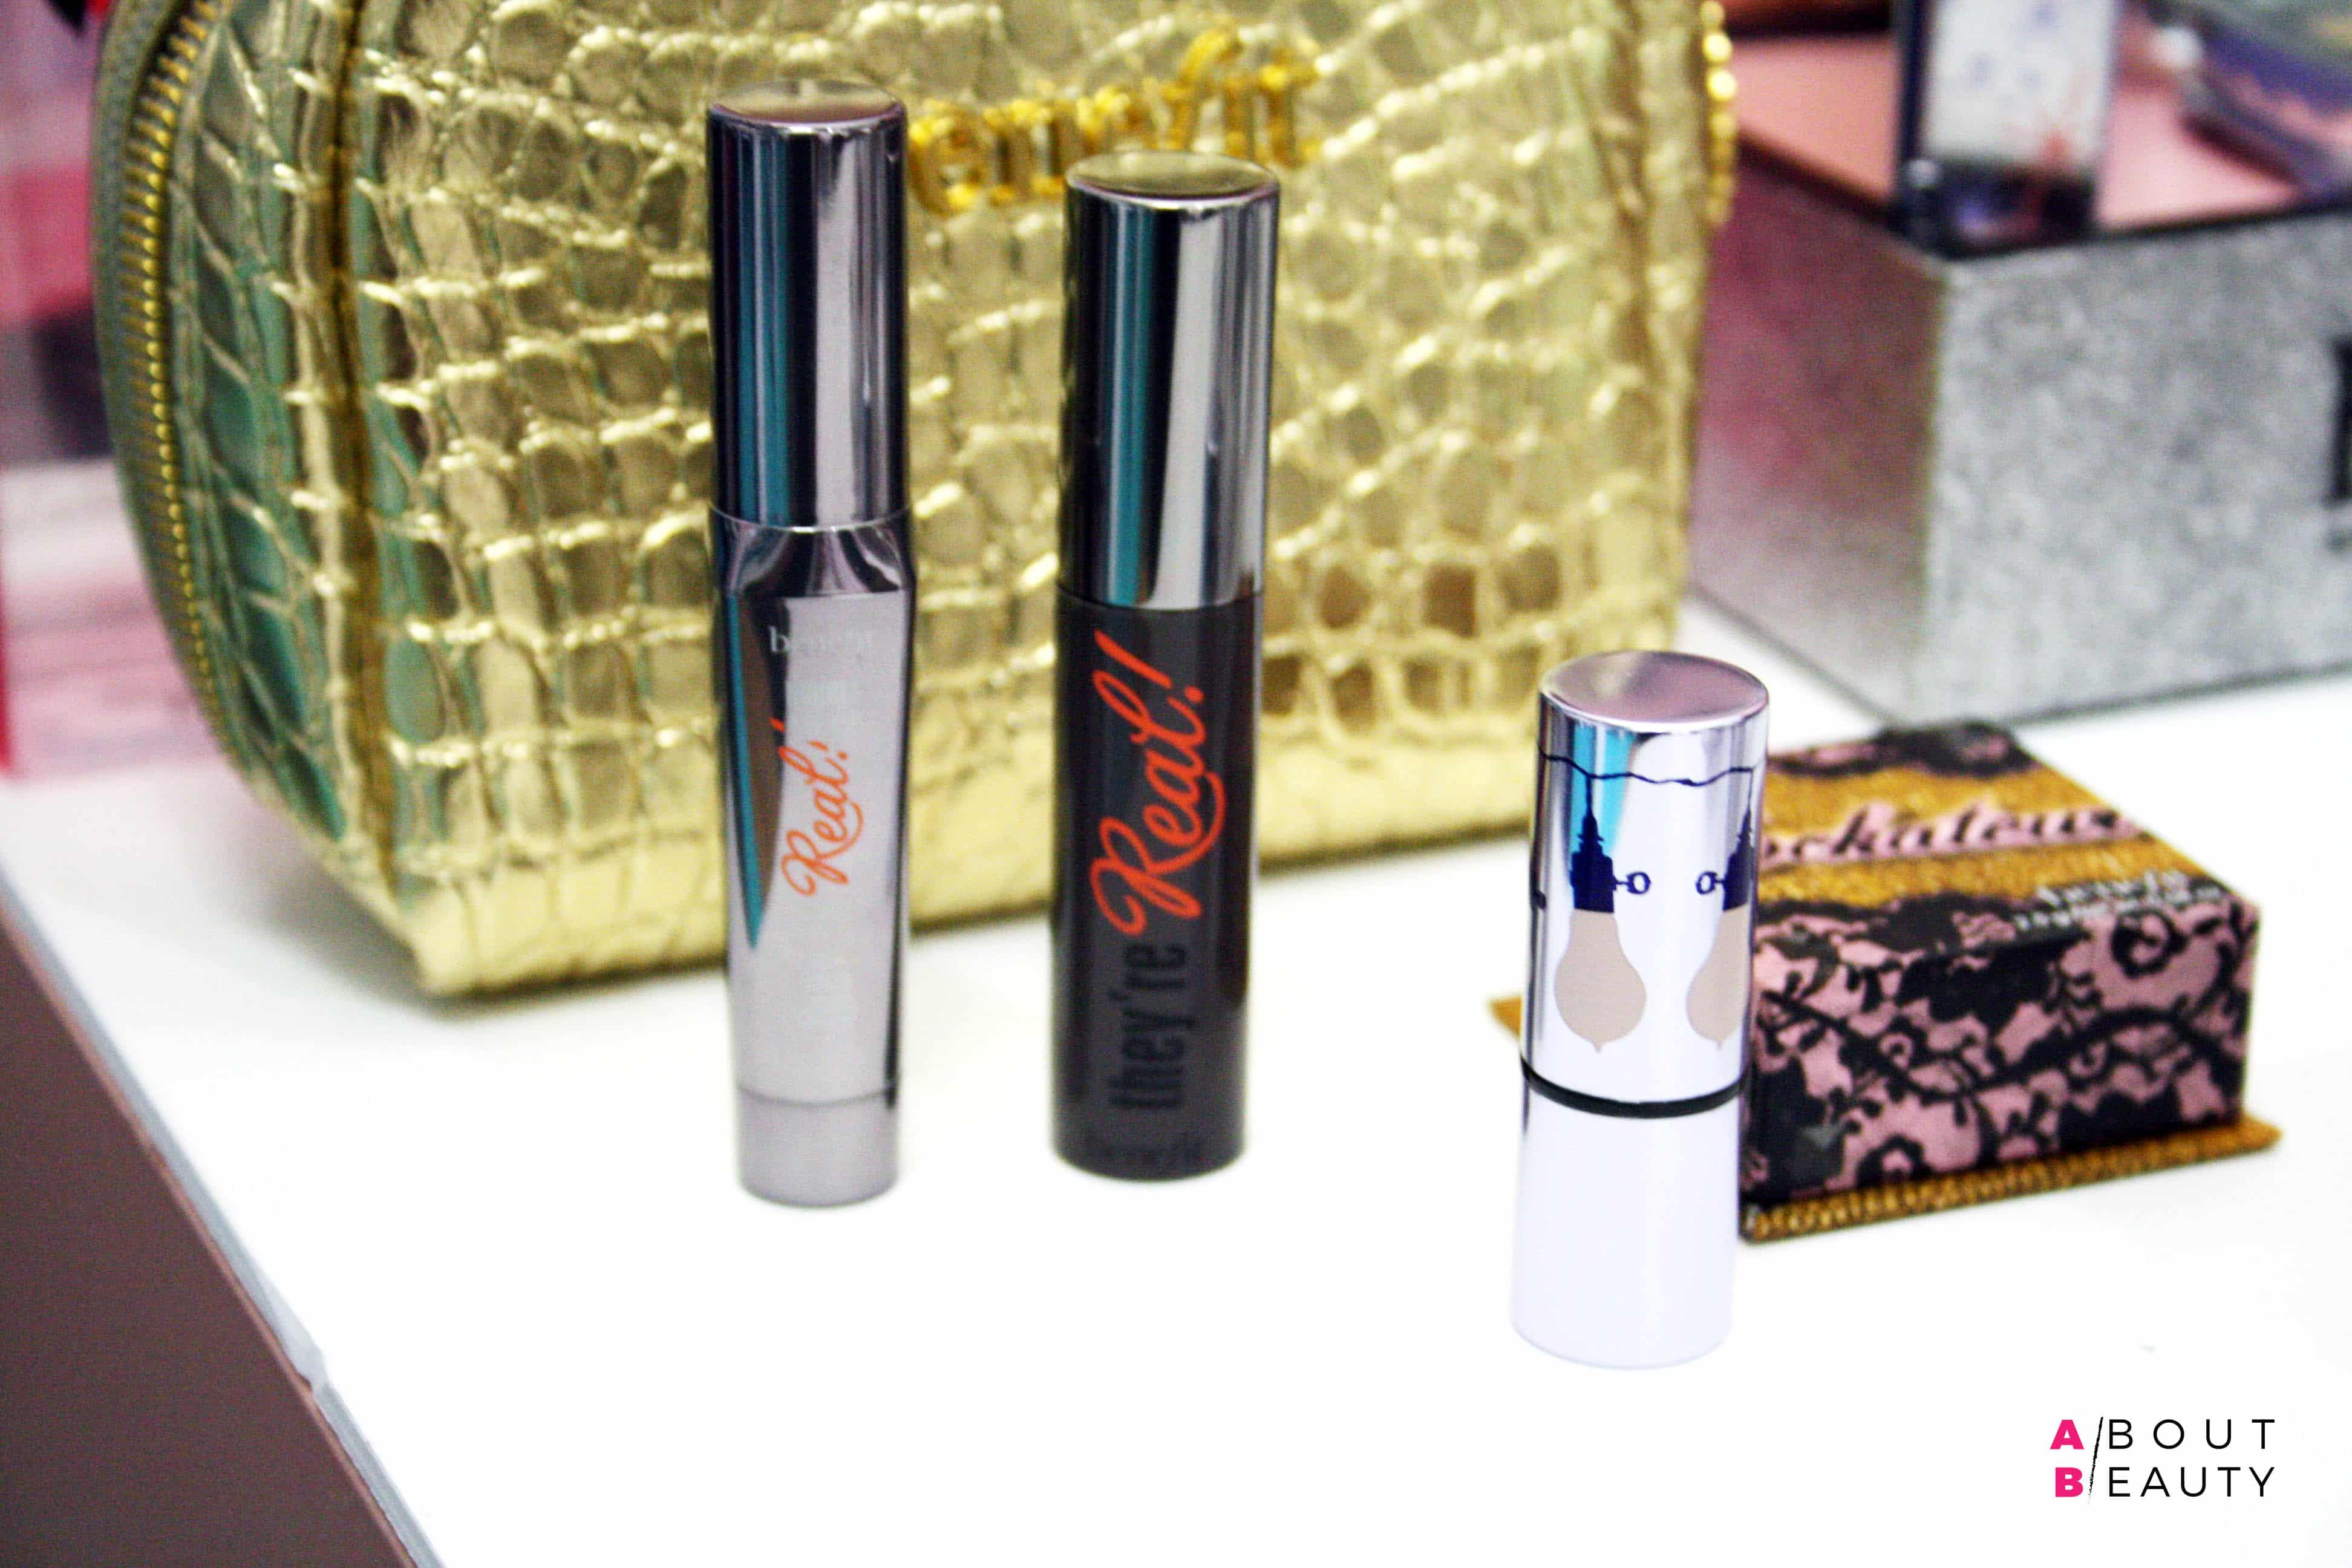 Benefit autunno-inverno 2017: i prodotti Date night with Mr.Right